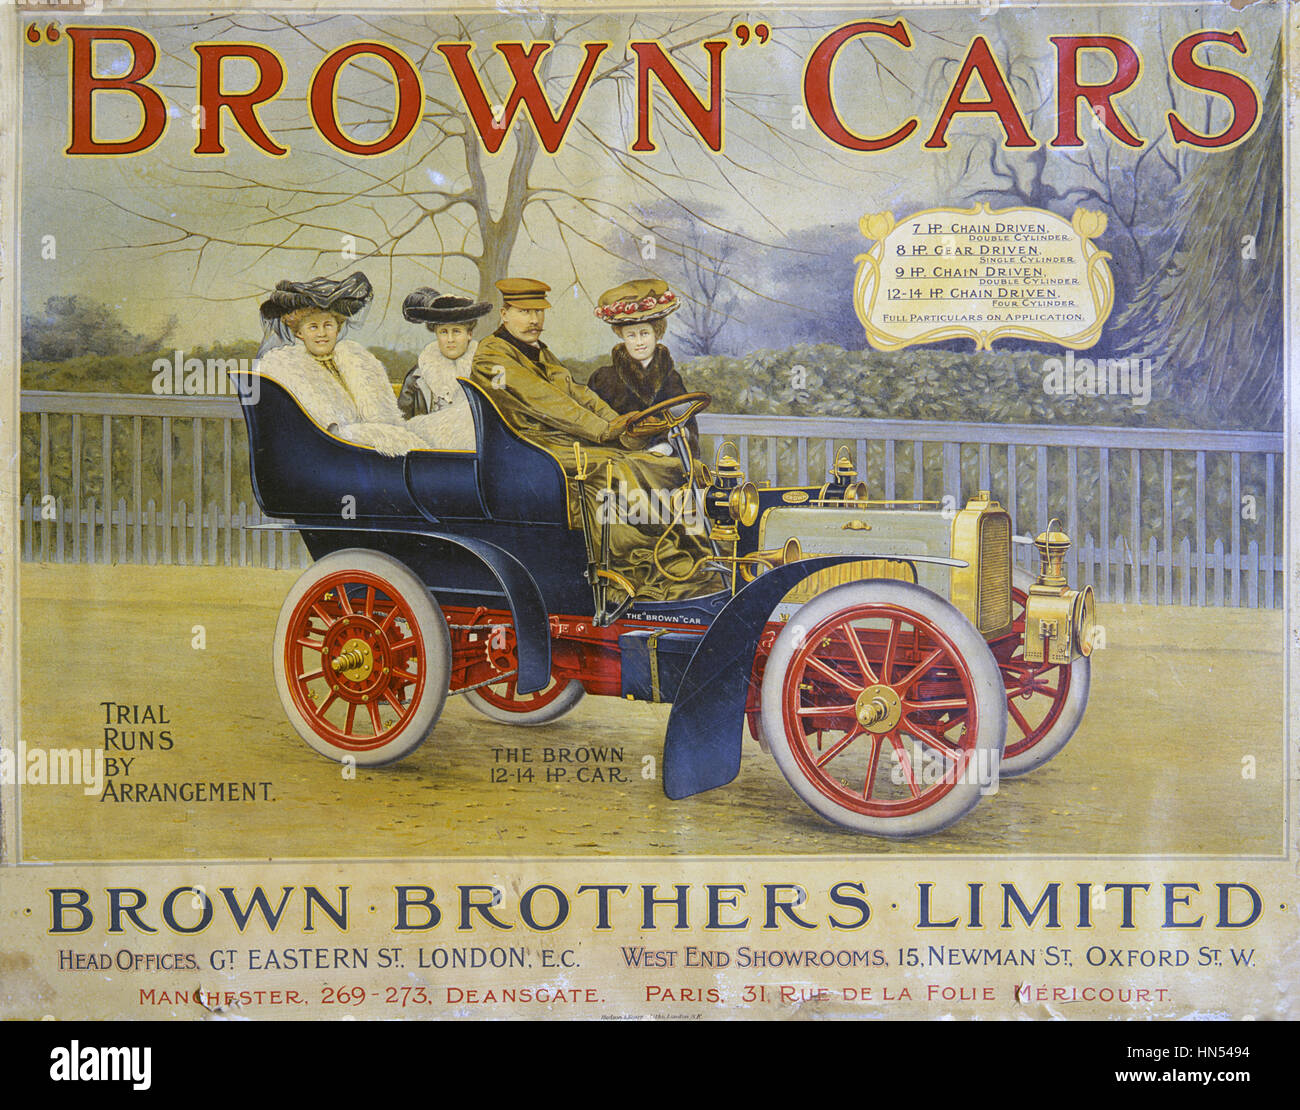 Brown Brothers Limited poster - Stock Image